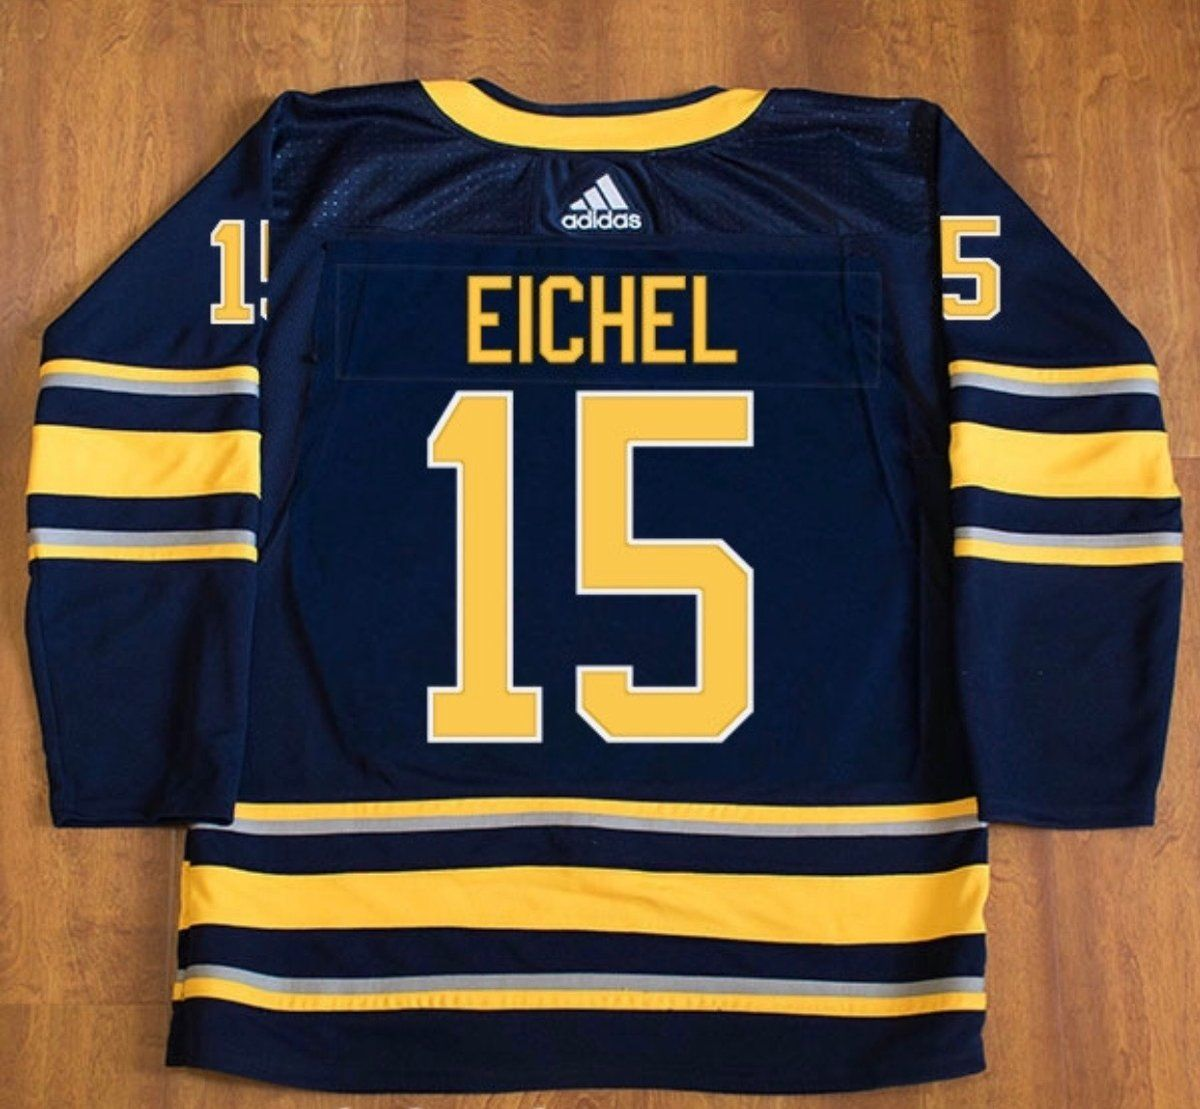 48f029777 Shop and Save more than 50% at The Jersey Barn! New High Quality Buffalo  Sabres Premier Adidas NHL Home   Road Jerseys. Fast order processing and  Free ...